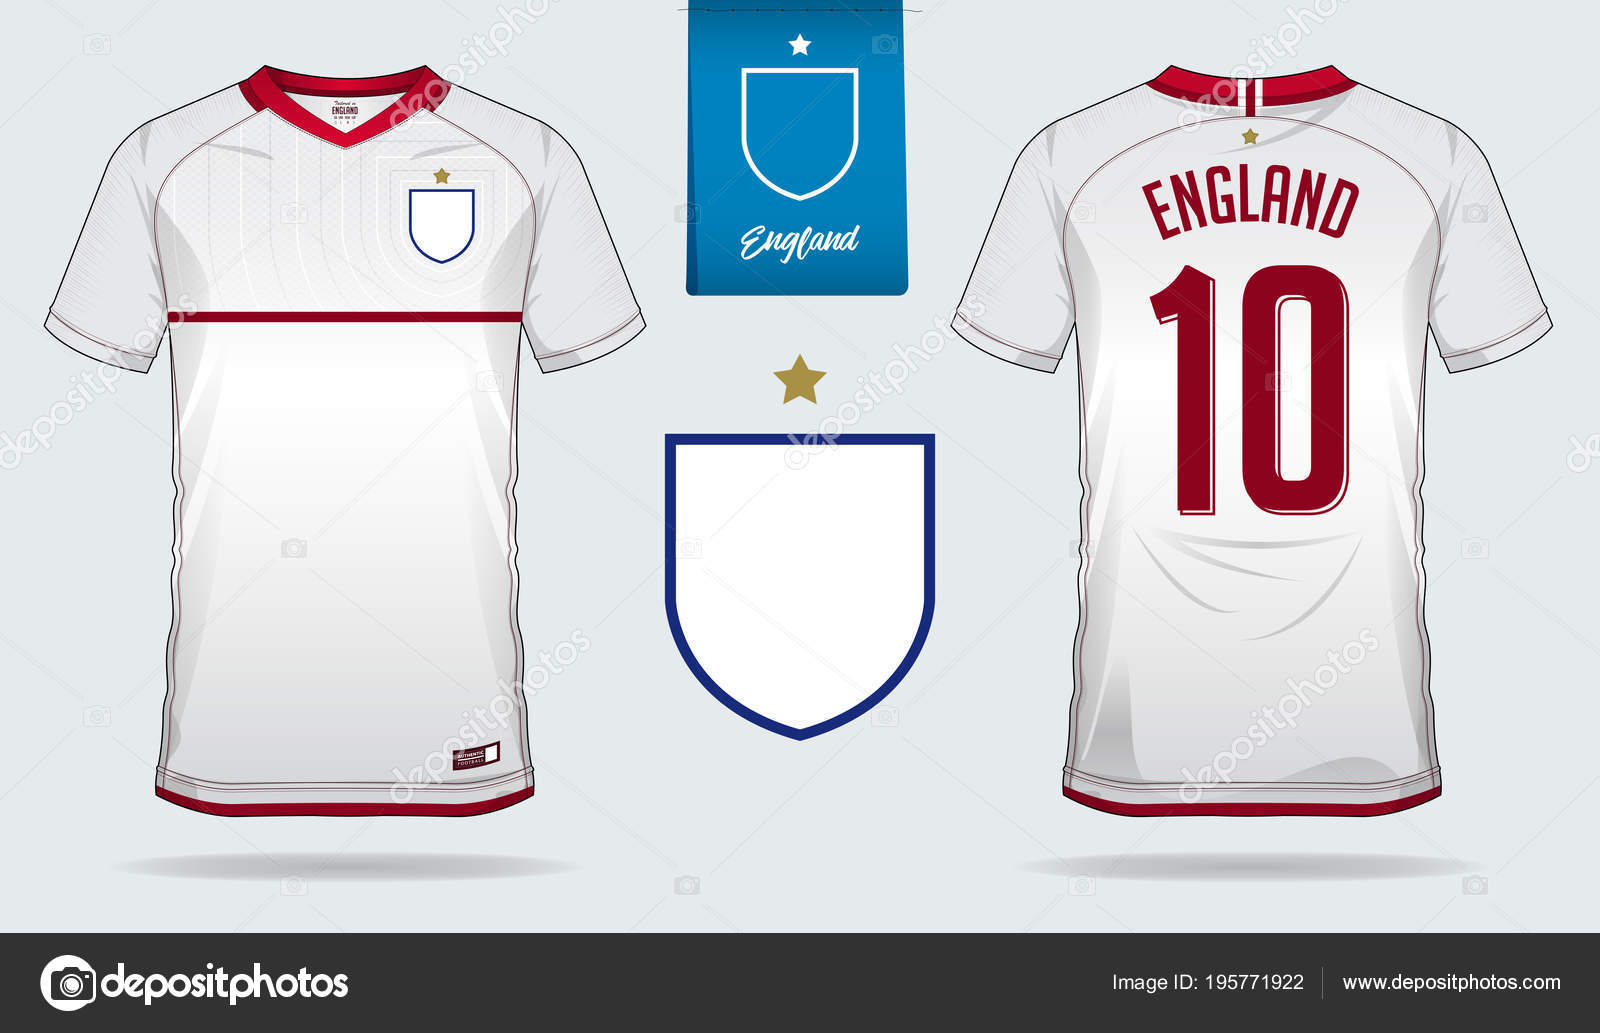 Set Soccer Jersey Football Kit Template Design England National Football —  Stock Vector 96106a1de